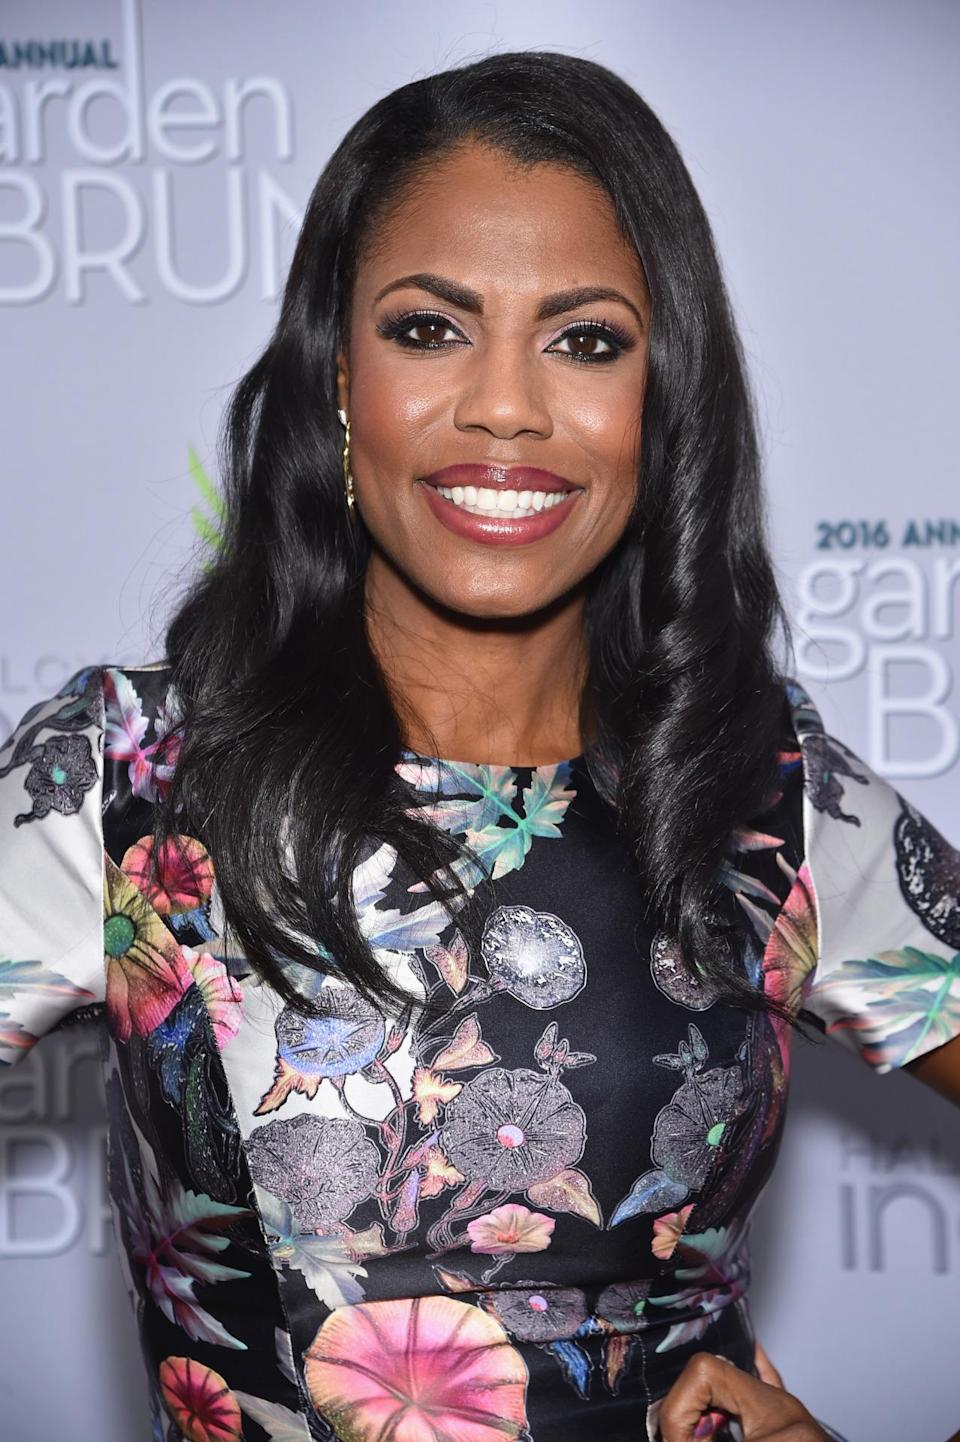 <p>Omarosa Manigault attends the Garden Brunch prior to the 102nd White House Correspondents' Dinner, April 30. <i>(Photo: Dimitrios Kambouris/Getty Images)</i></p>